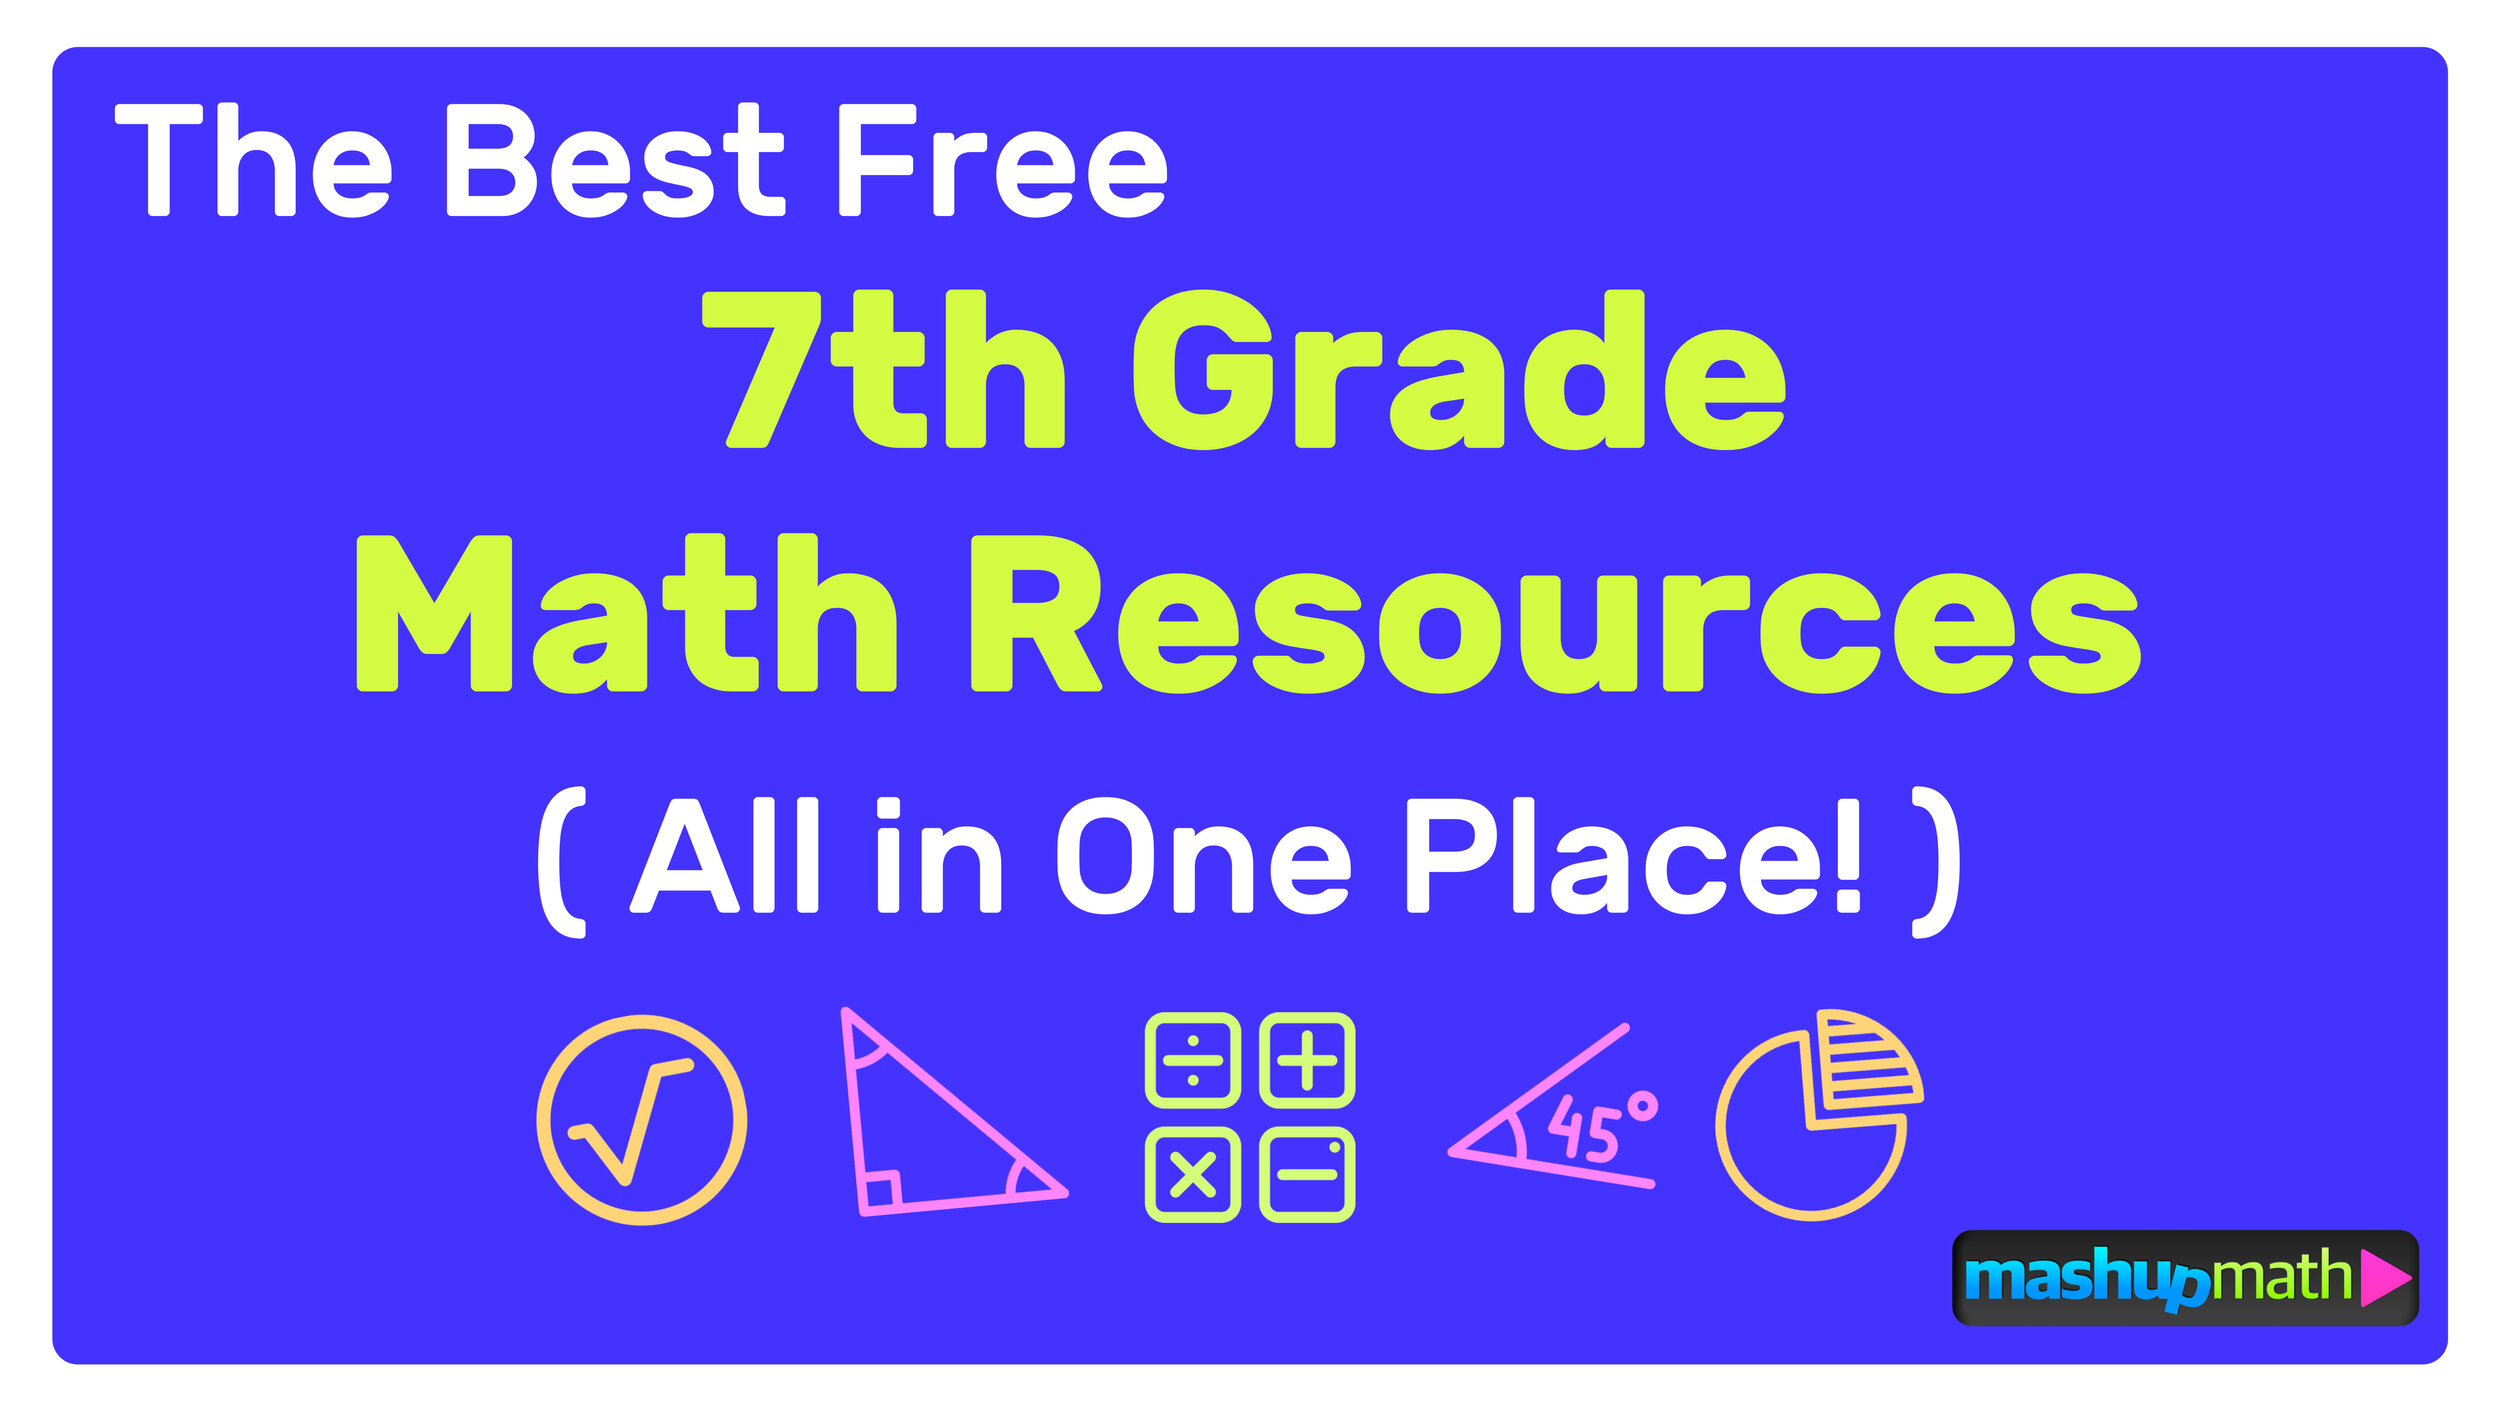 The Best Free 7th Grade Math Resources: Complete List! — Mashup Math [ 844 x 1500 Pixel ]